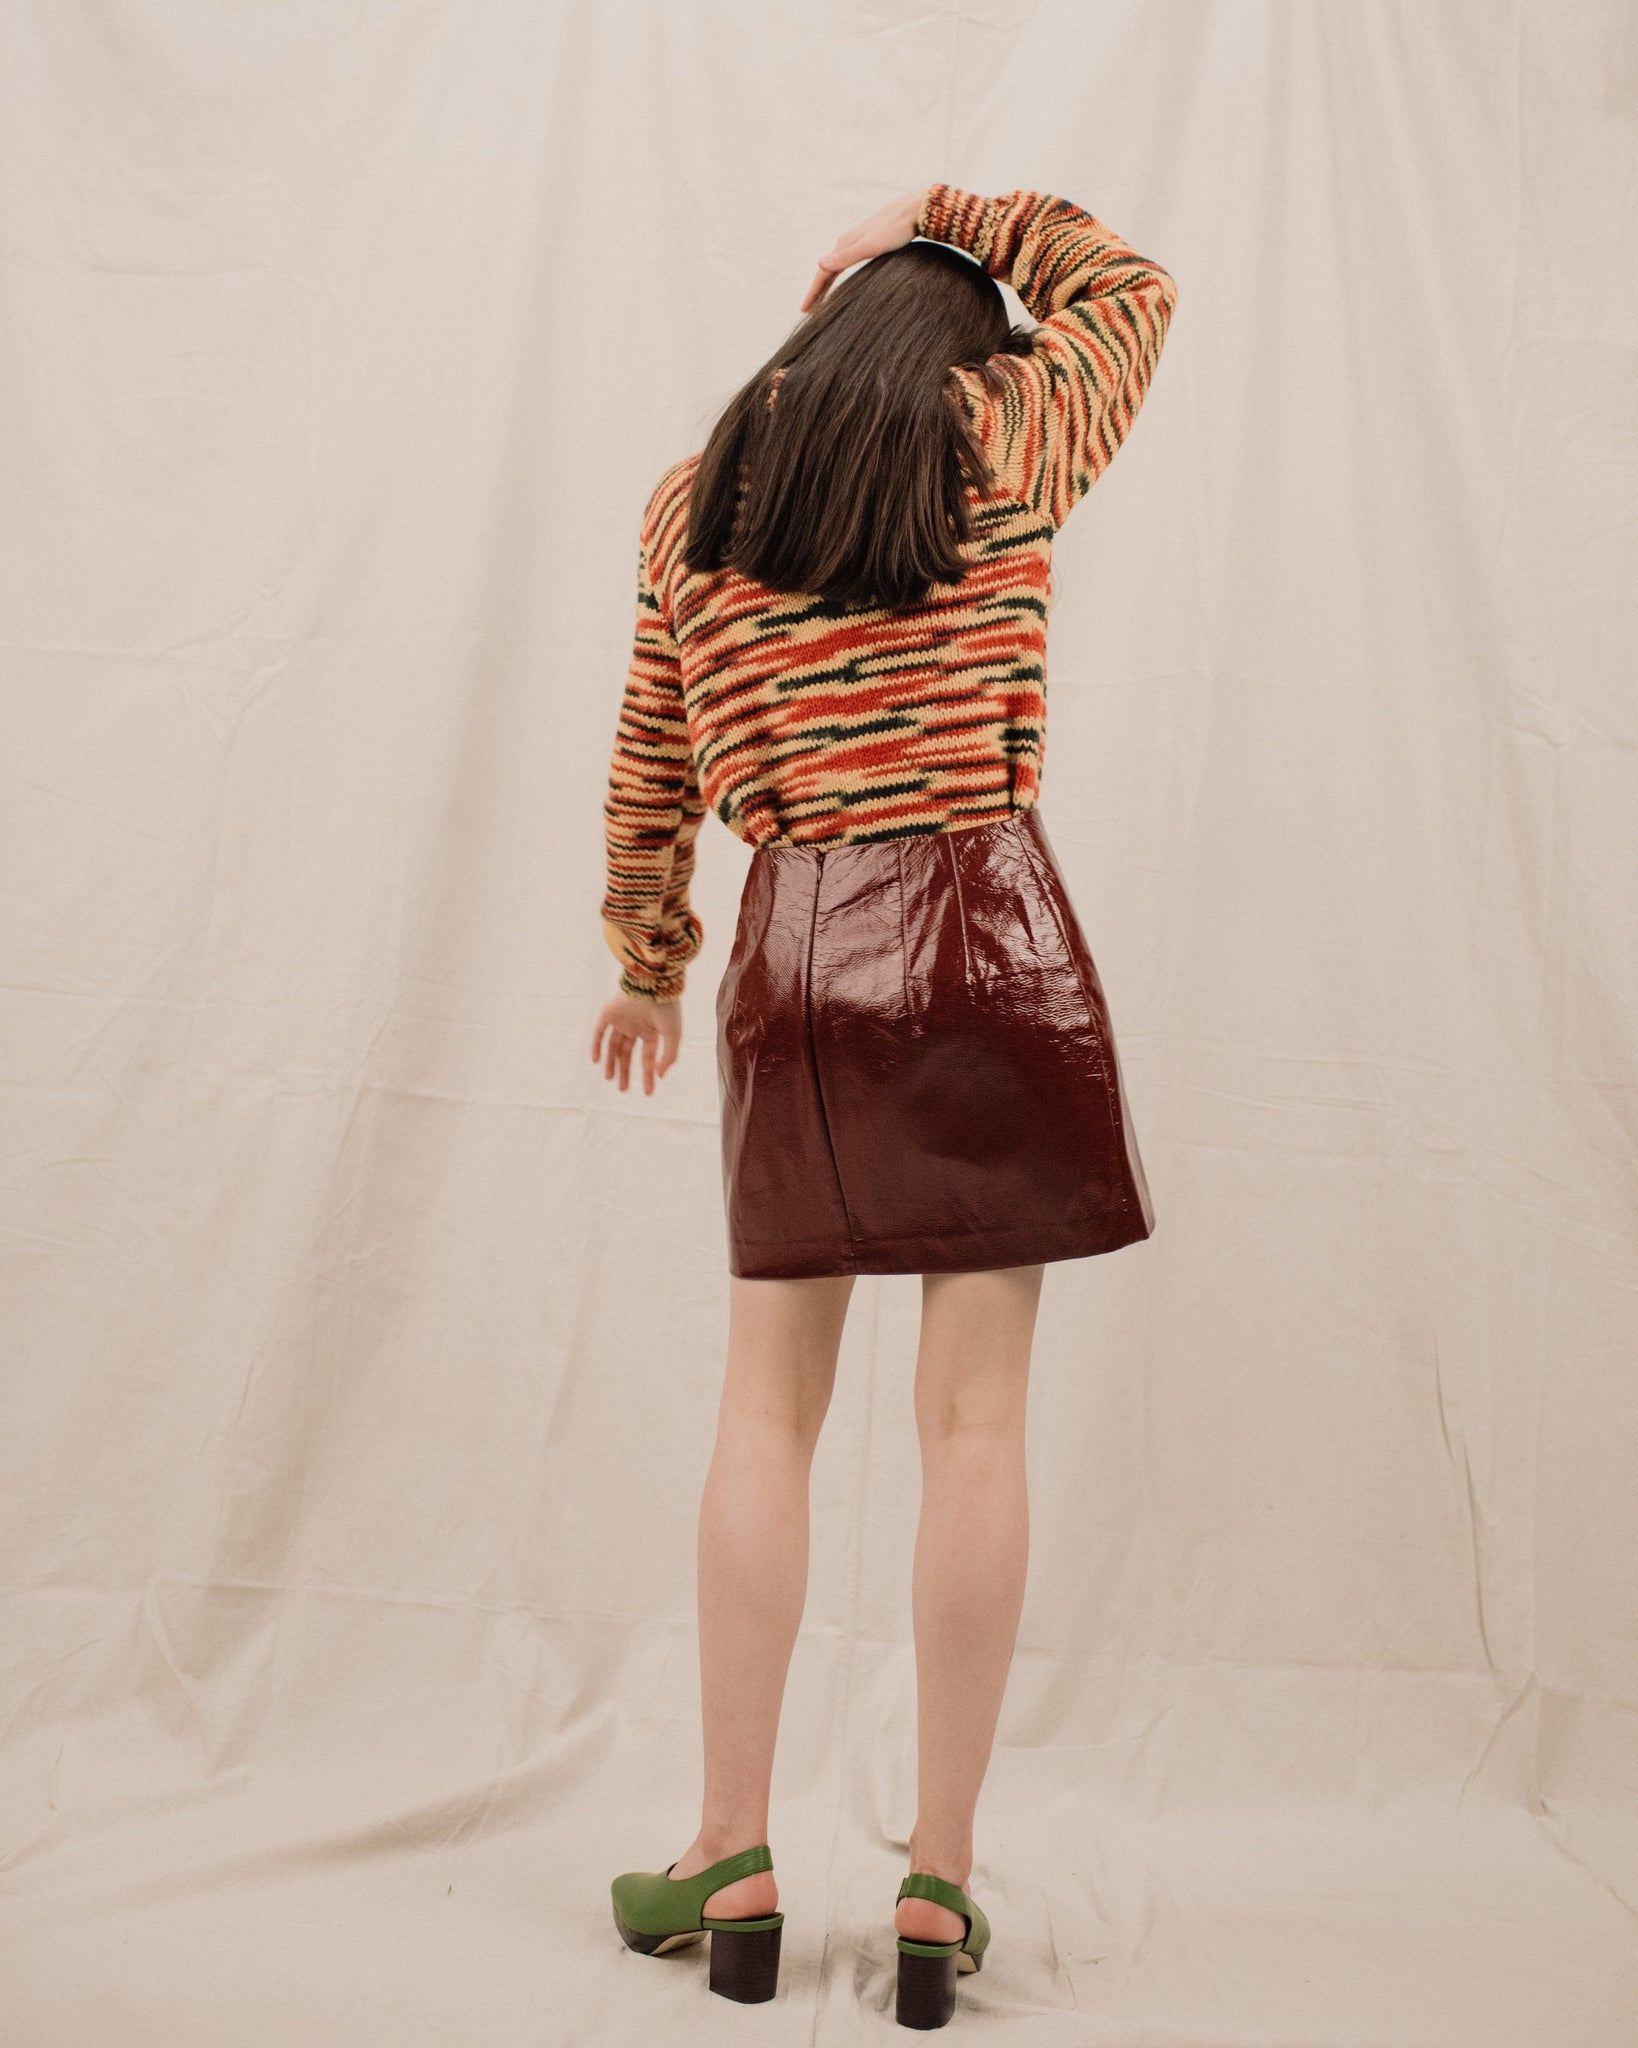 Vintage Burgundy Patent Leather Mini Skirt / S/M - Closed Caption